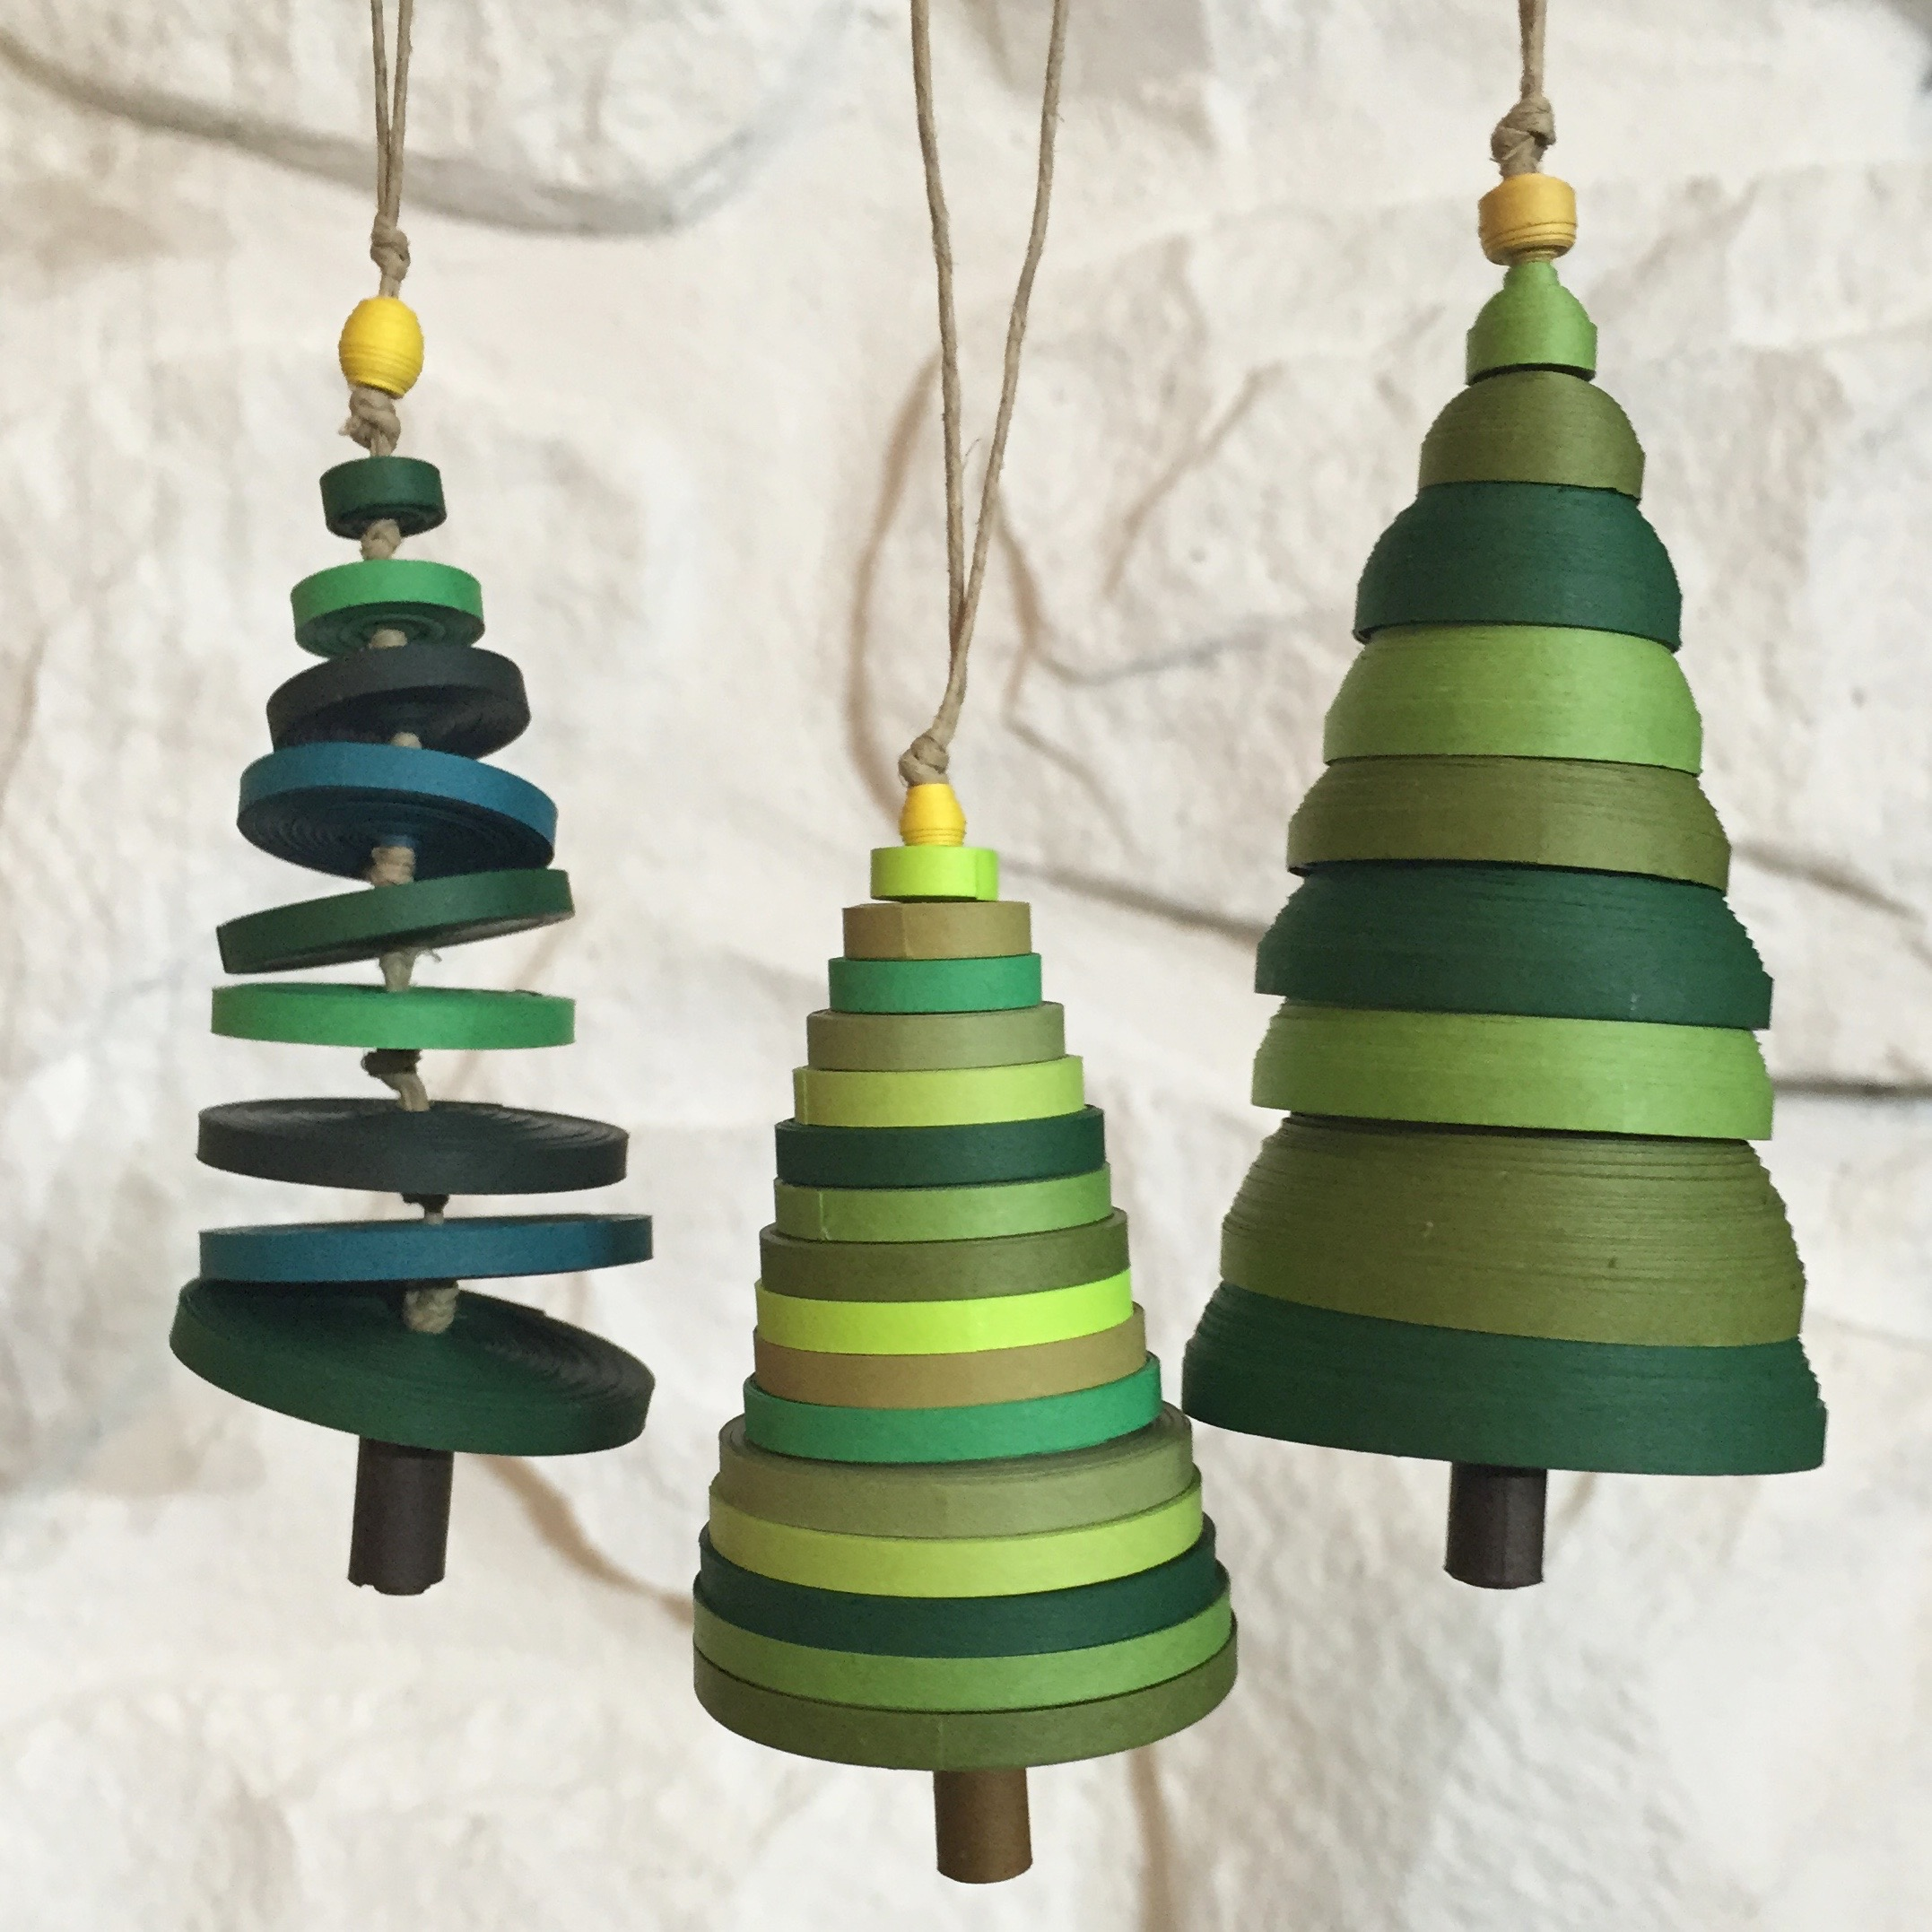 Image of 3 quilled holiday tree ornaments